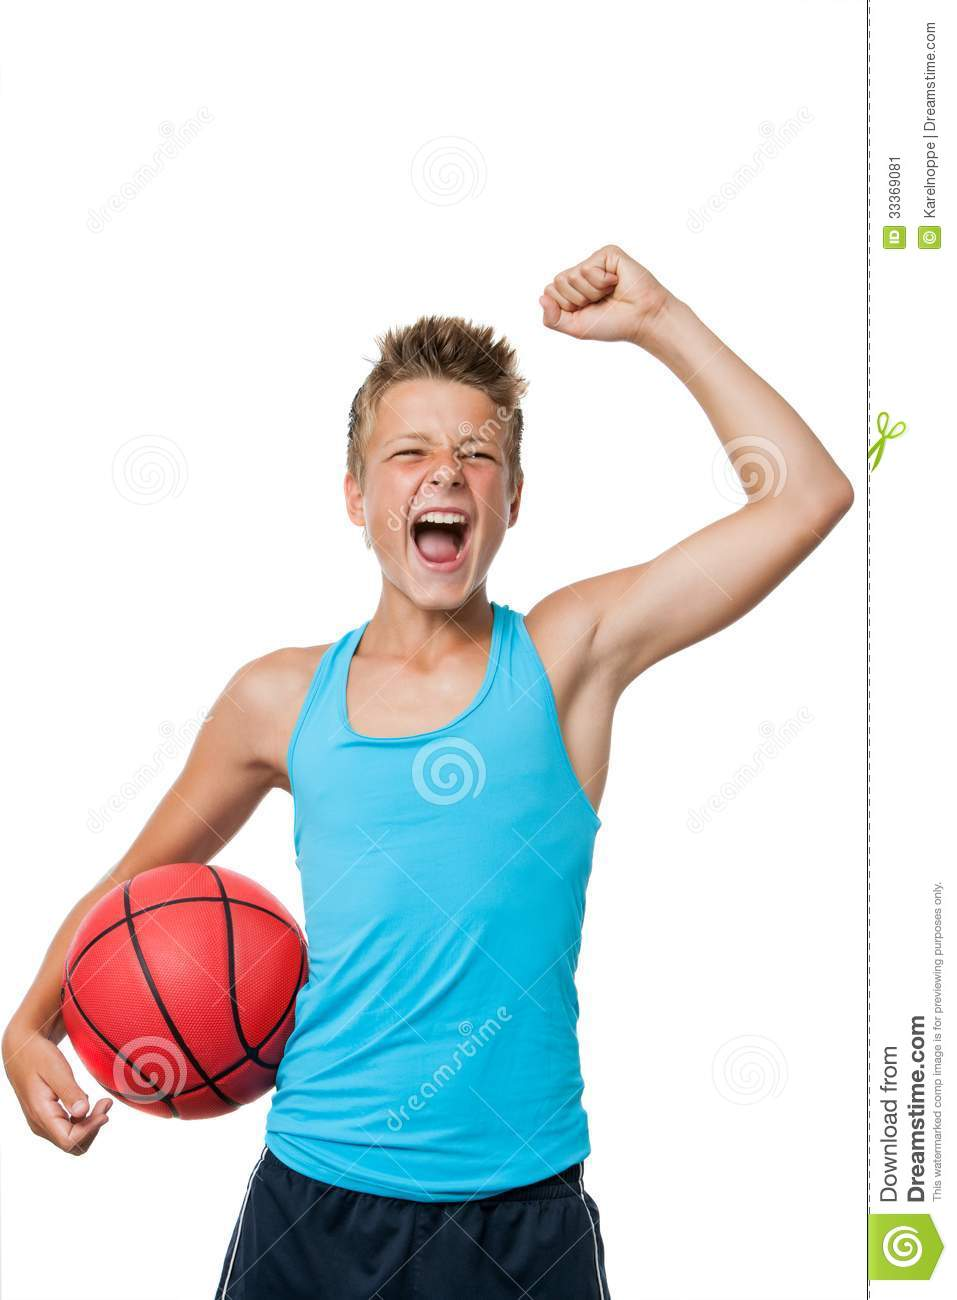 Teen Basketball Player With Winning Attitude Stock Image